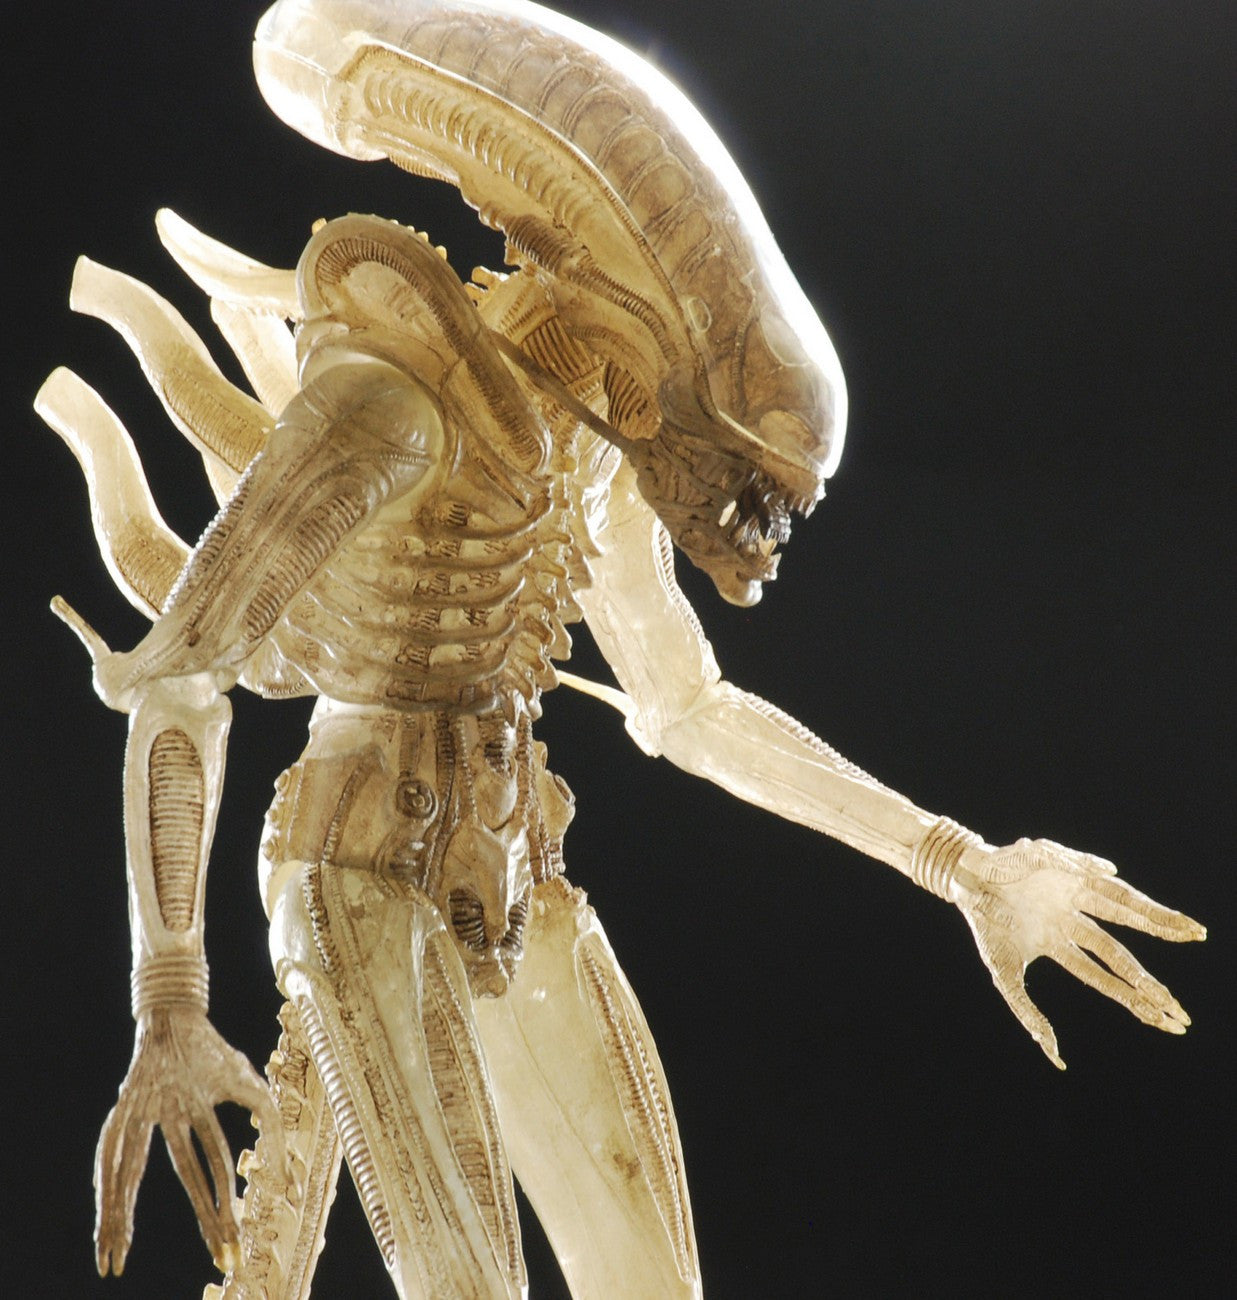 Neca - Alien - 1/4 Scale Translucent Prototype Suit Concept Figure - Marvelous Toys - 2